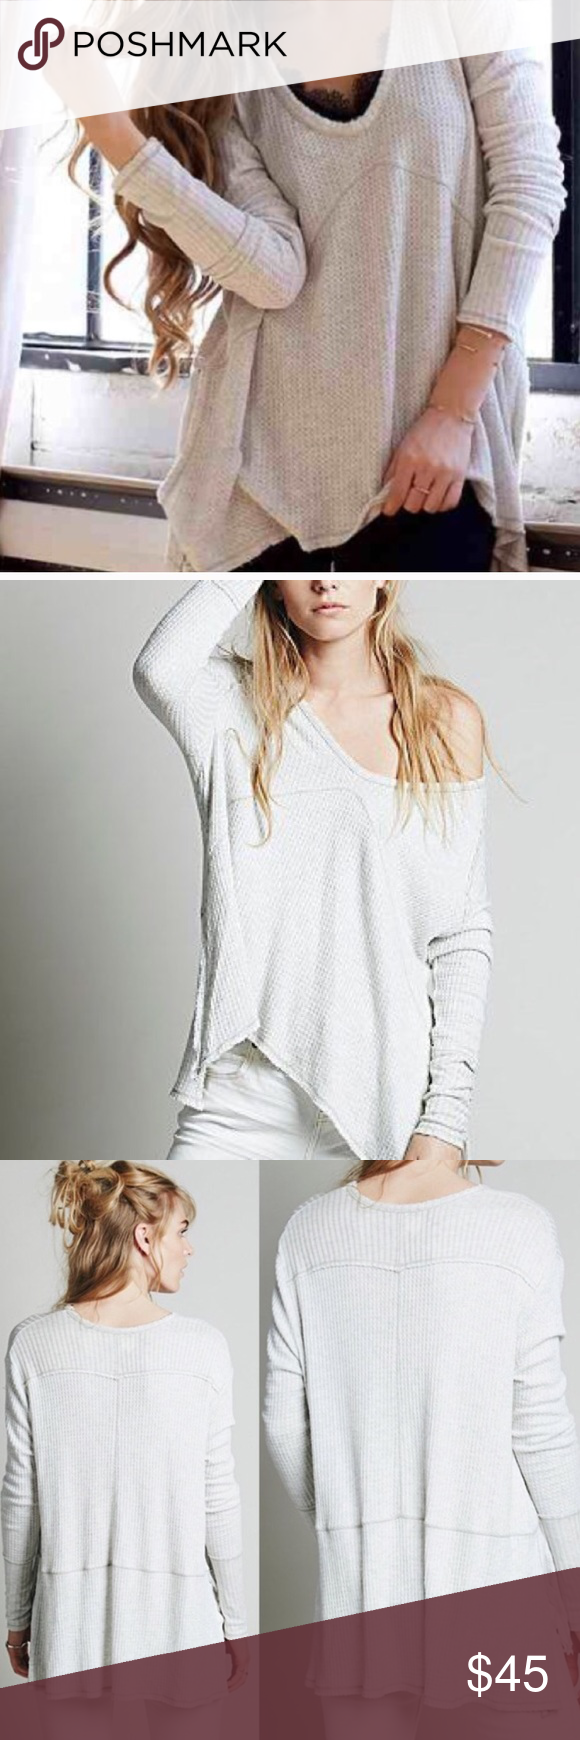 Free People Sunset Park Thermal 🌼 Free People Sunset Park Thermal in heathered oatmeal.  Features oversized fit, v-neck and raw edges that intentionally fray.  In excellent ,gently used condition. Free People Tops